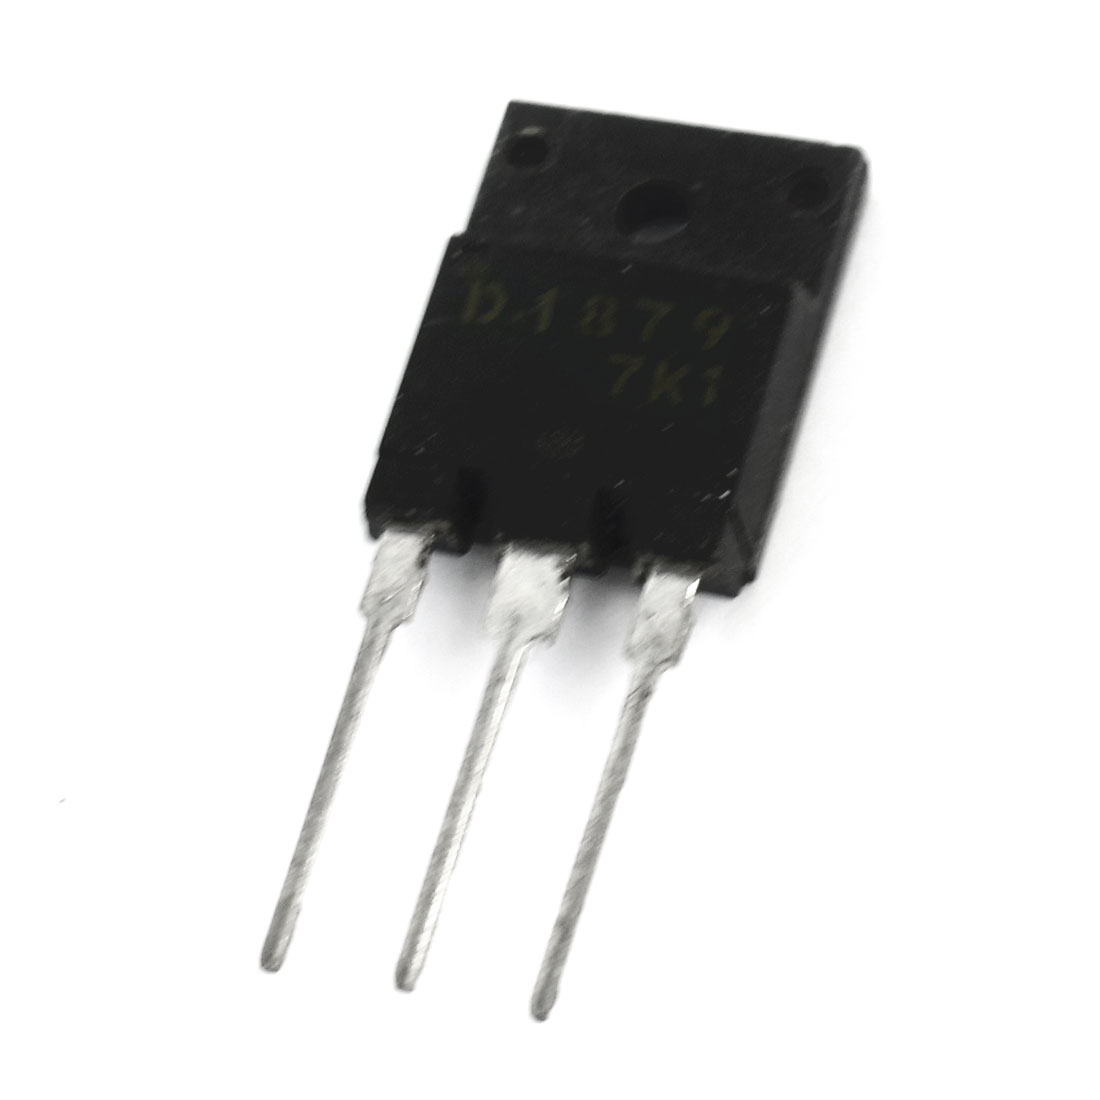 D1879 1500V 6Amp 3 Pin Semiconductor Silicon Transistor